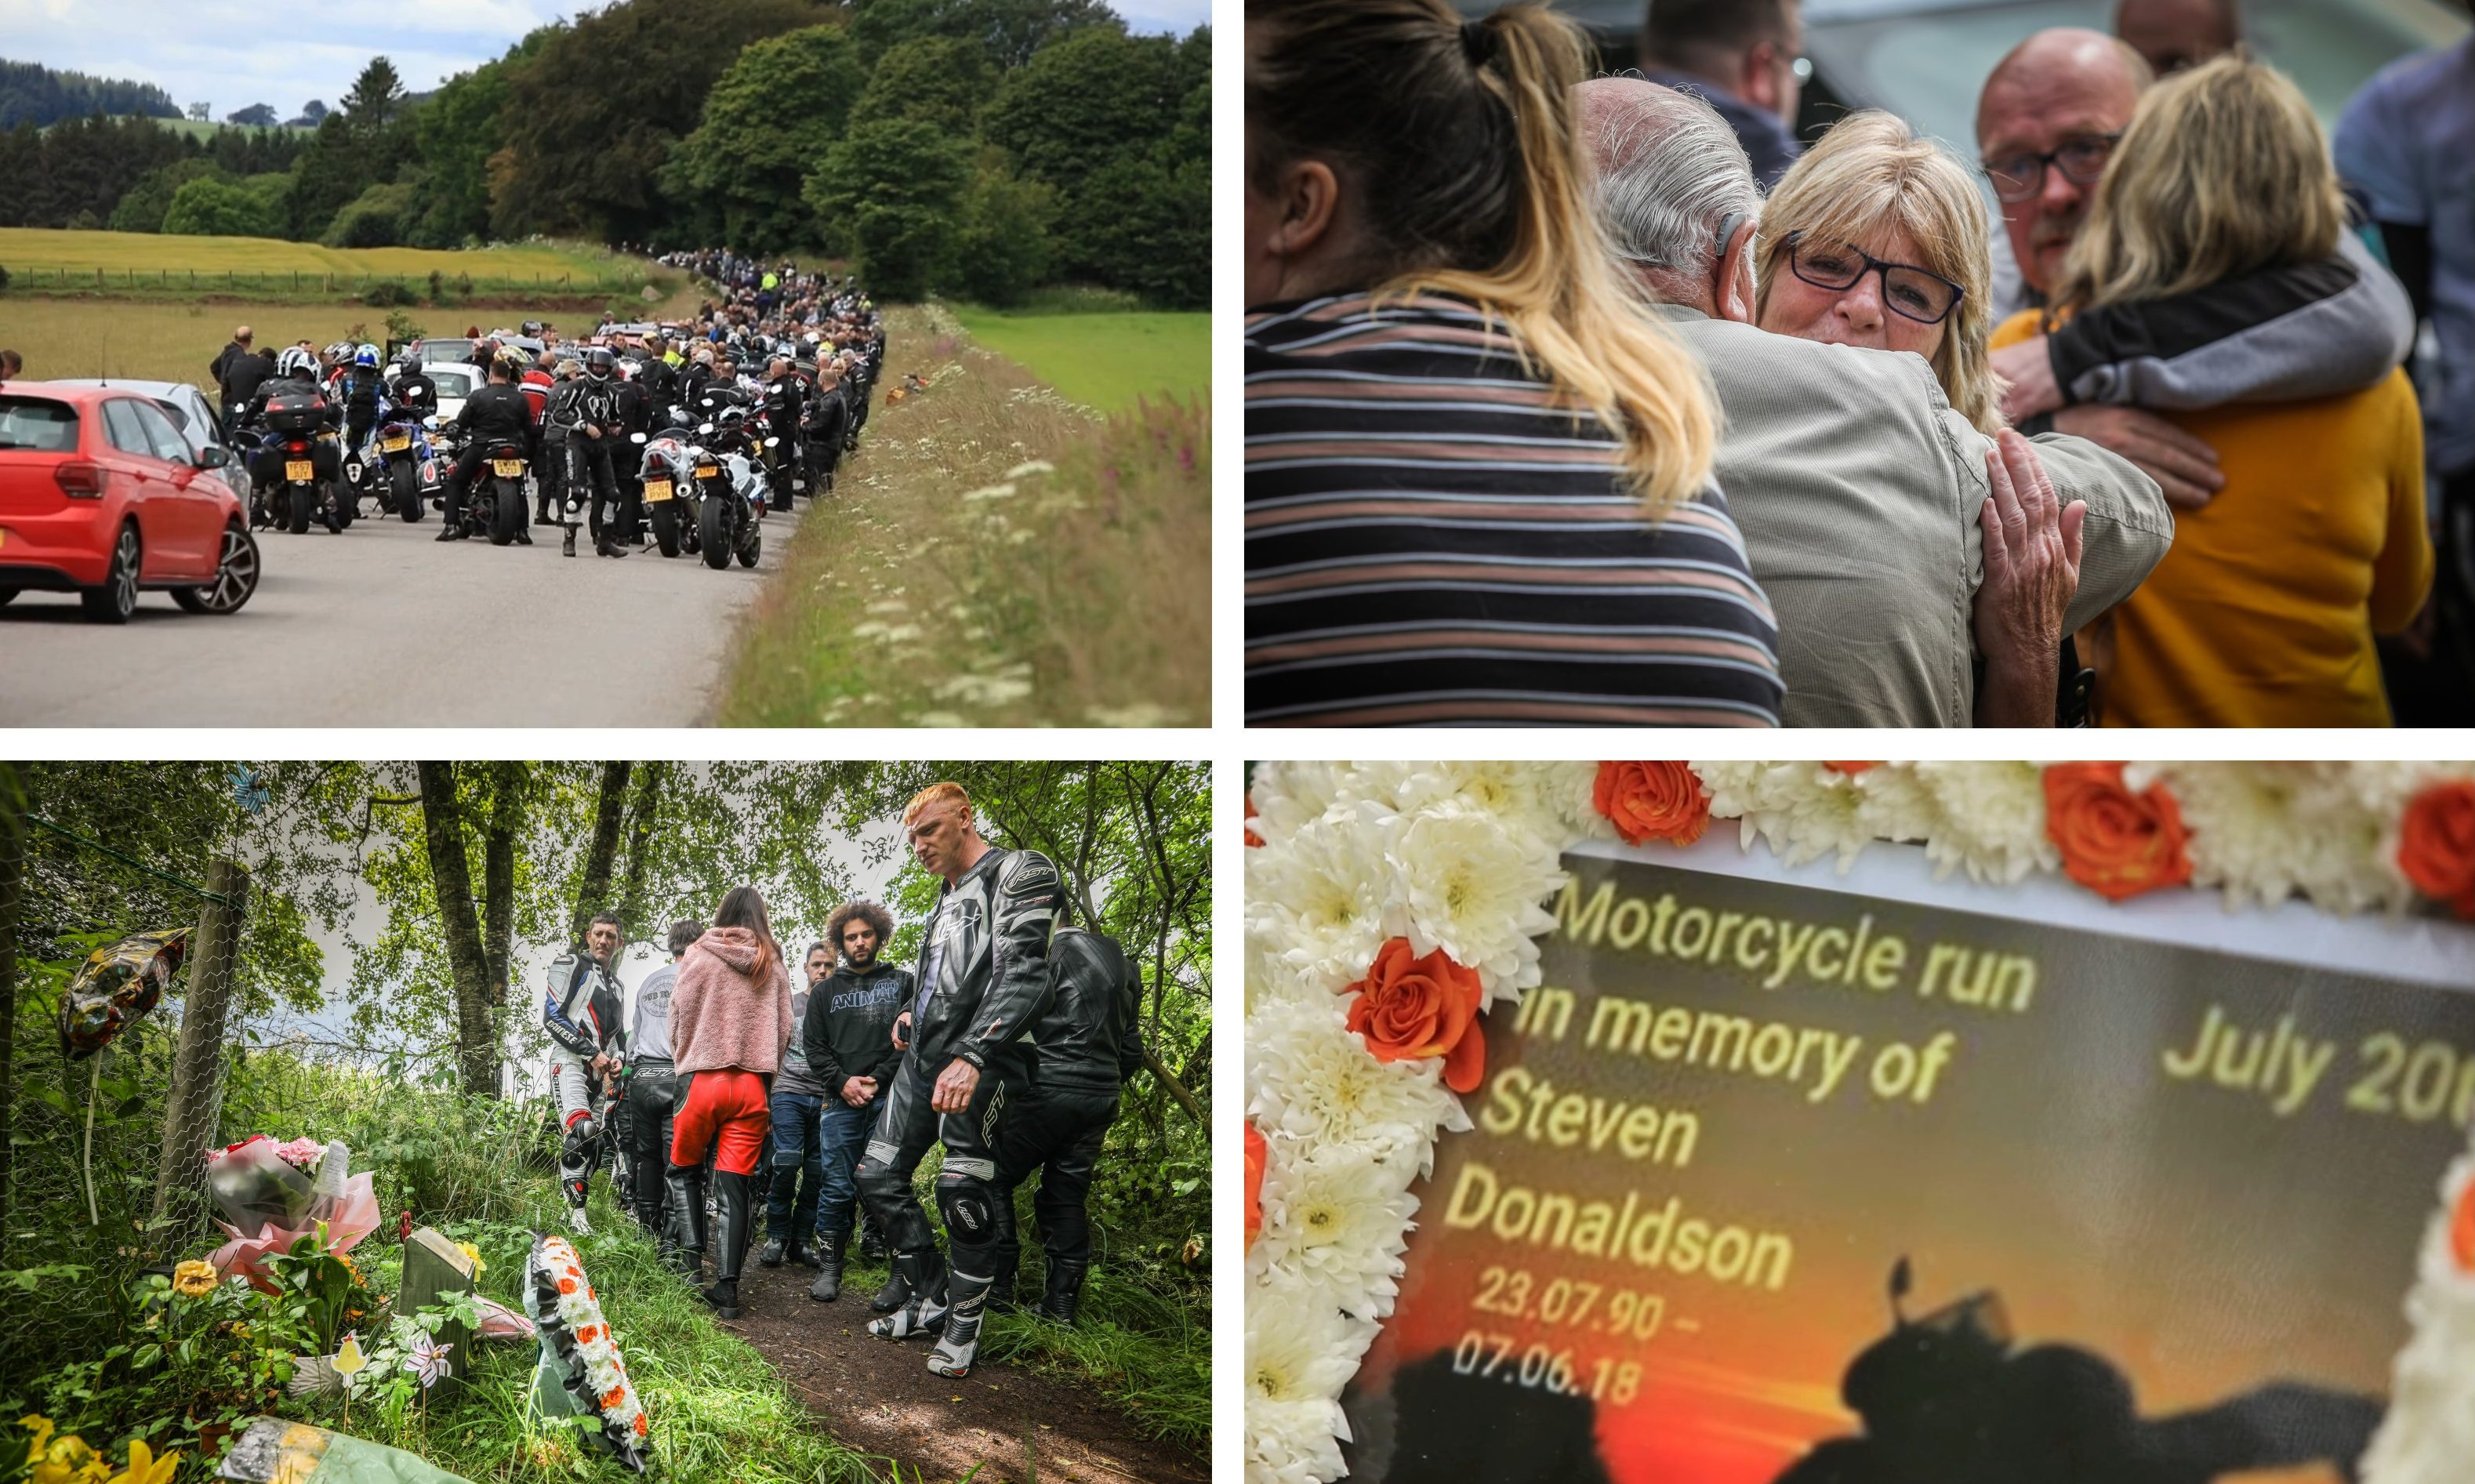 The Steven Donaldson memorial ride-out.